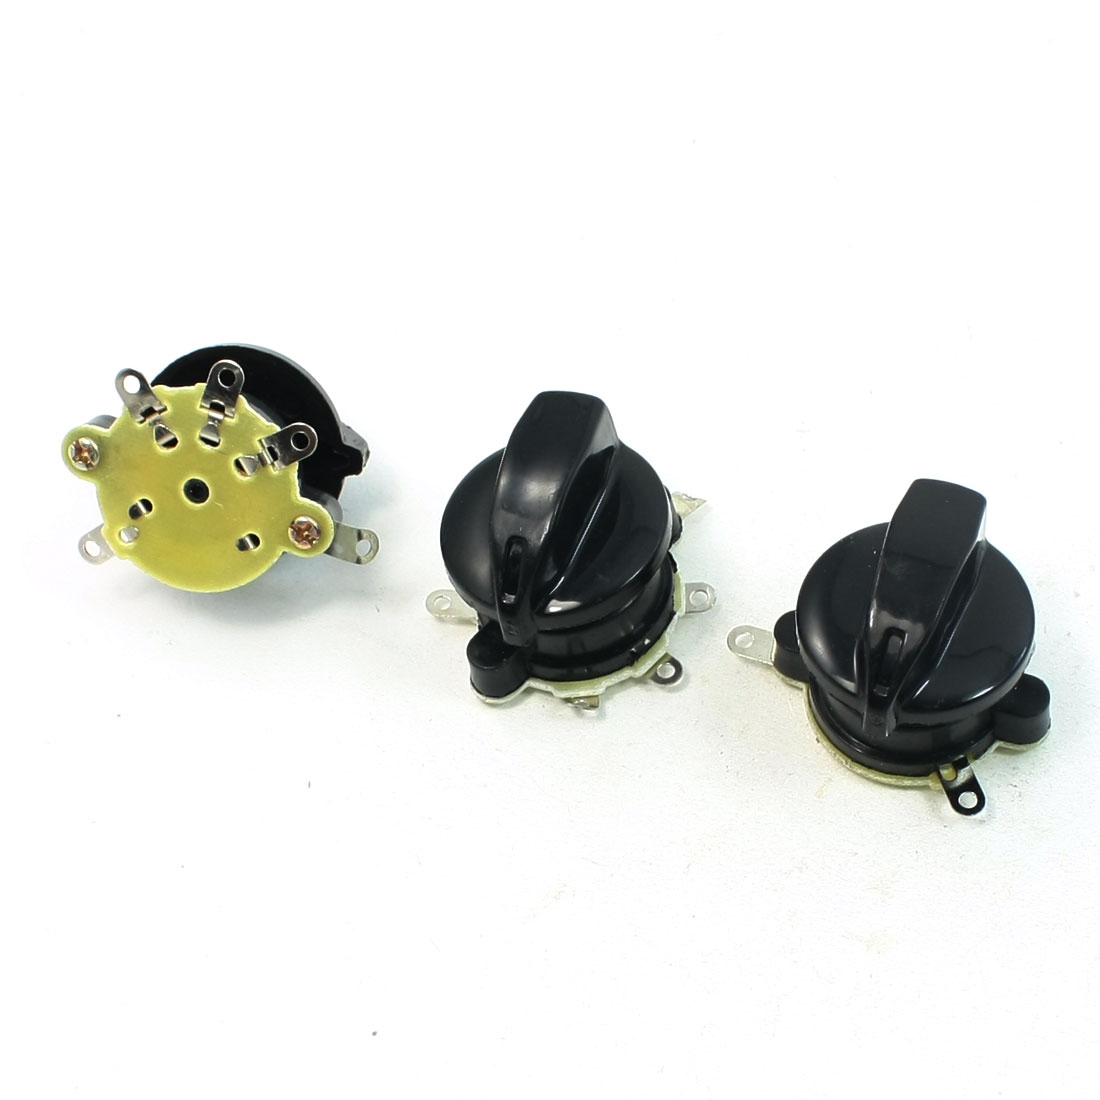 Plastic Housing 4P SPST Speed Control Switch 3 Pcs for Electric Fan